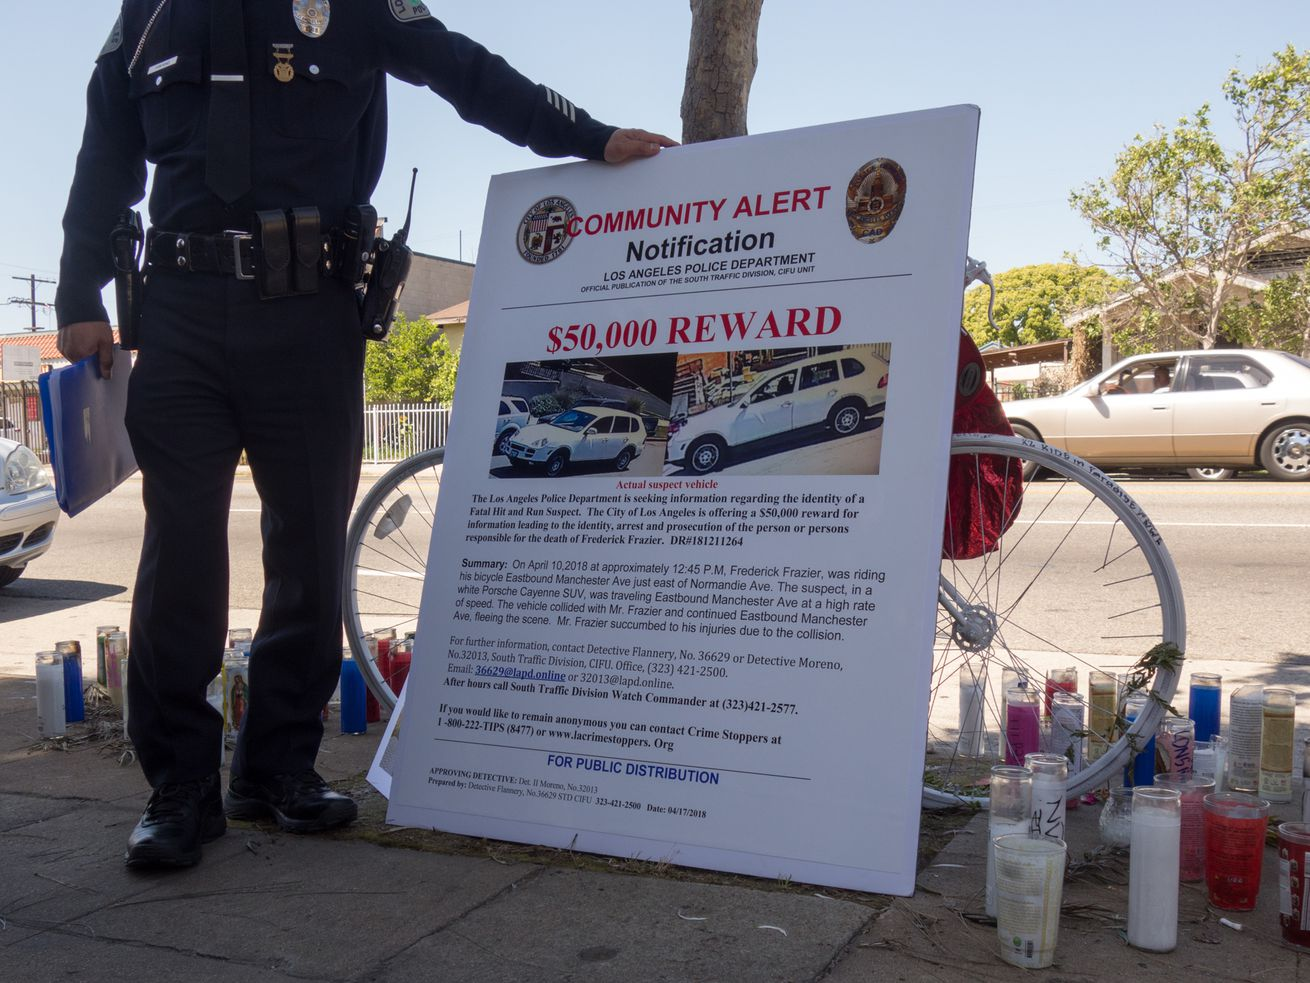 LAPD is offering a $50,000 reward for information leading to the arrest of the driver who struck and killed Frederick Frazier.